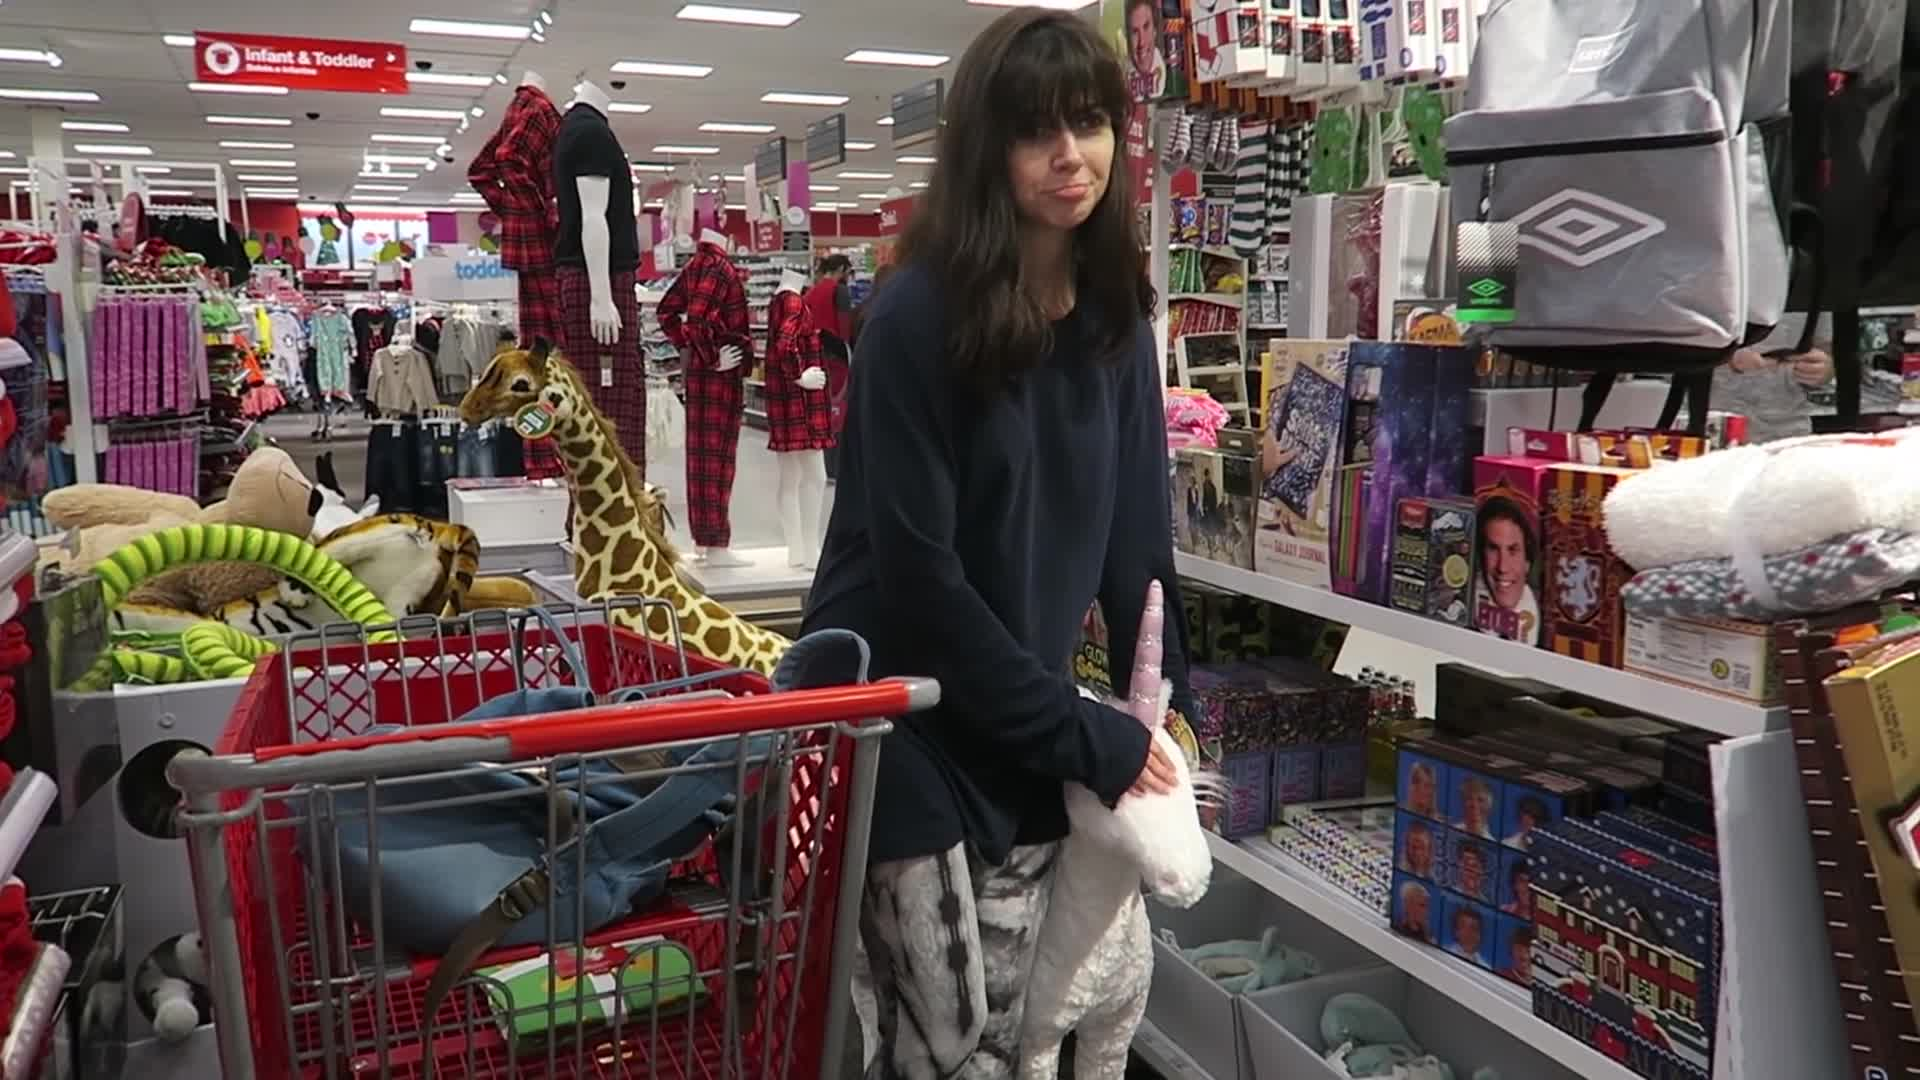 People & Blogs, k8, kaitlin witcher, kaitlinwitcher, kate, piddleass, vlogger, vlogging, vlogs, witcher, I'm back here again - Vlogmas Day 8 GIFs